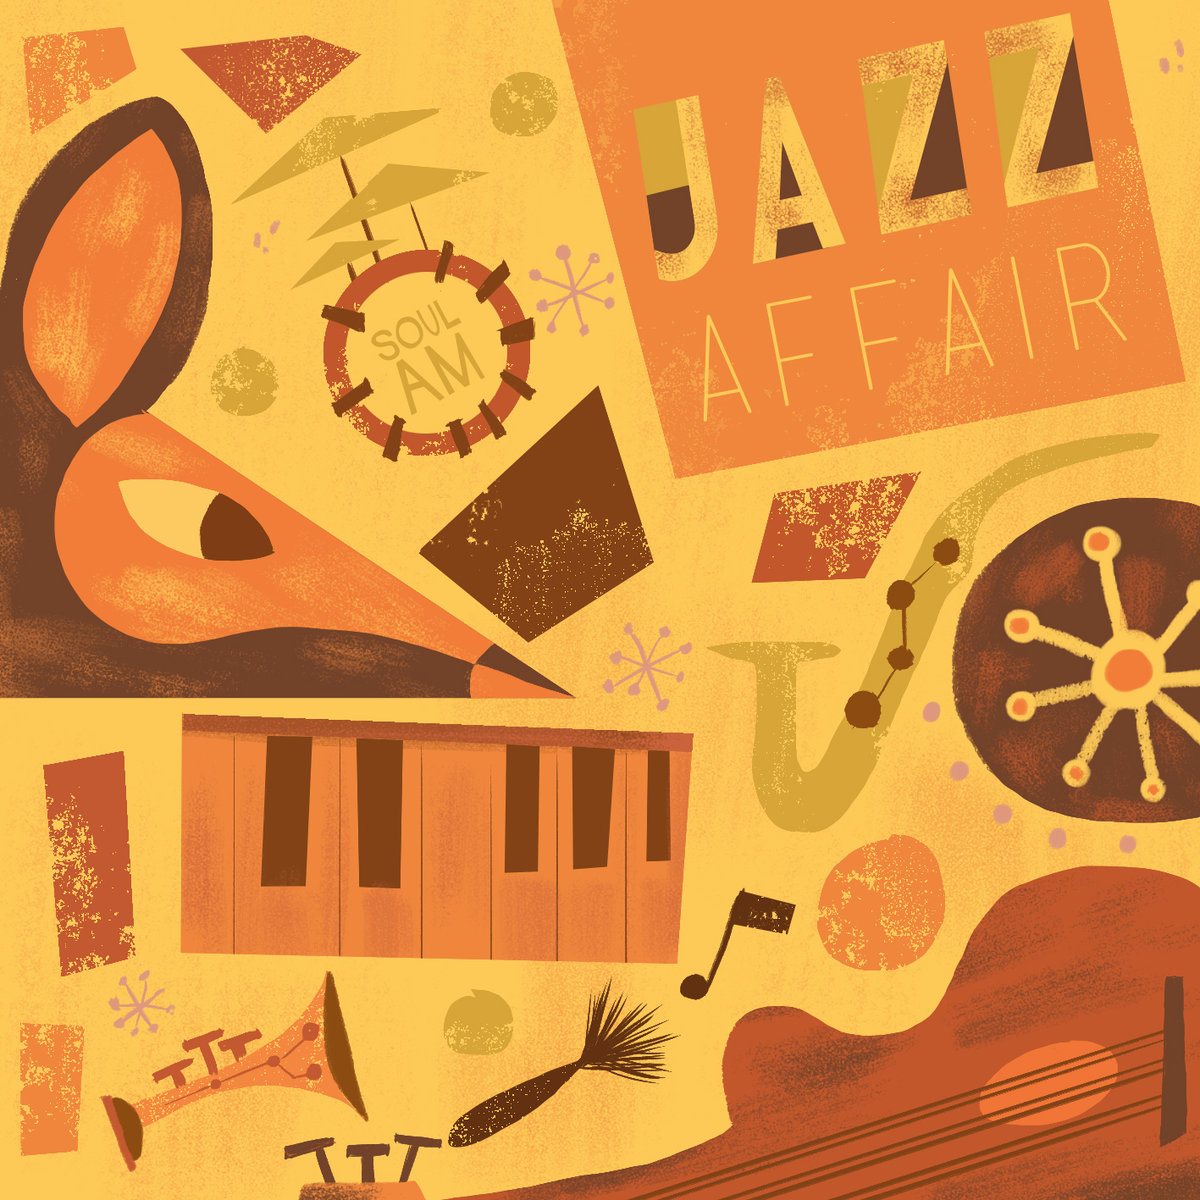 Jazz_affair